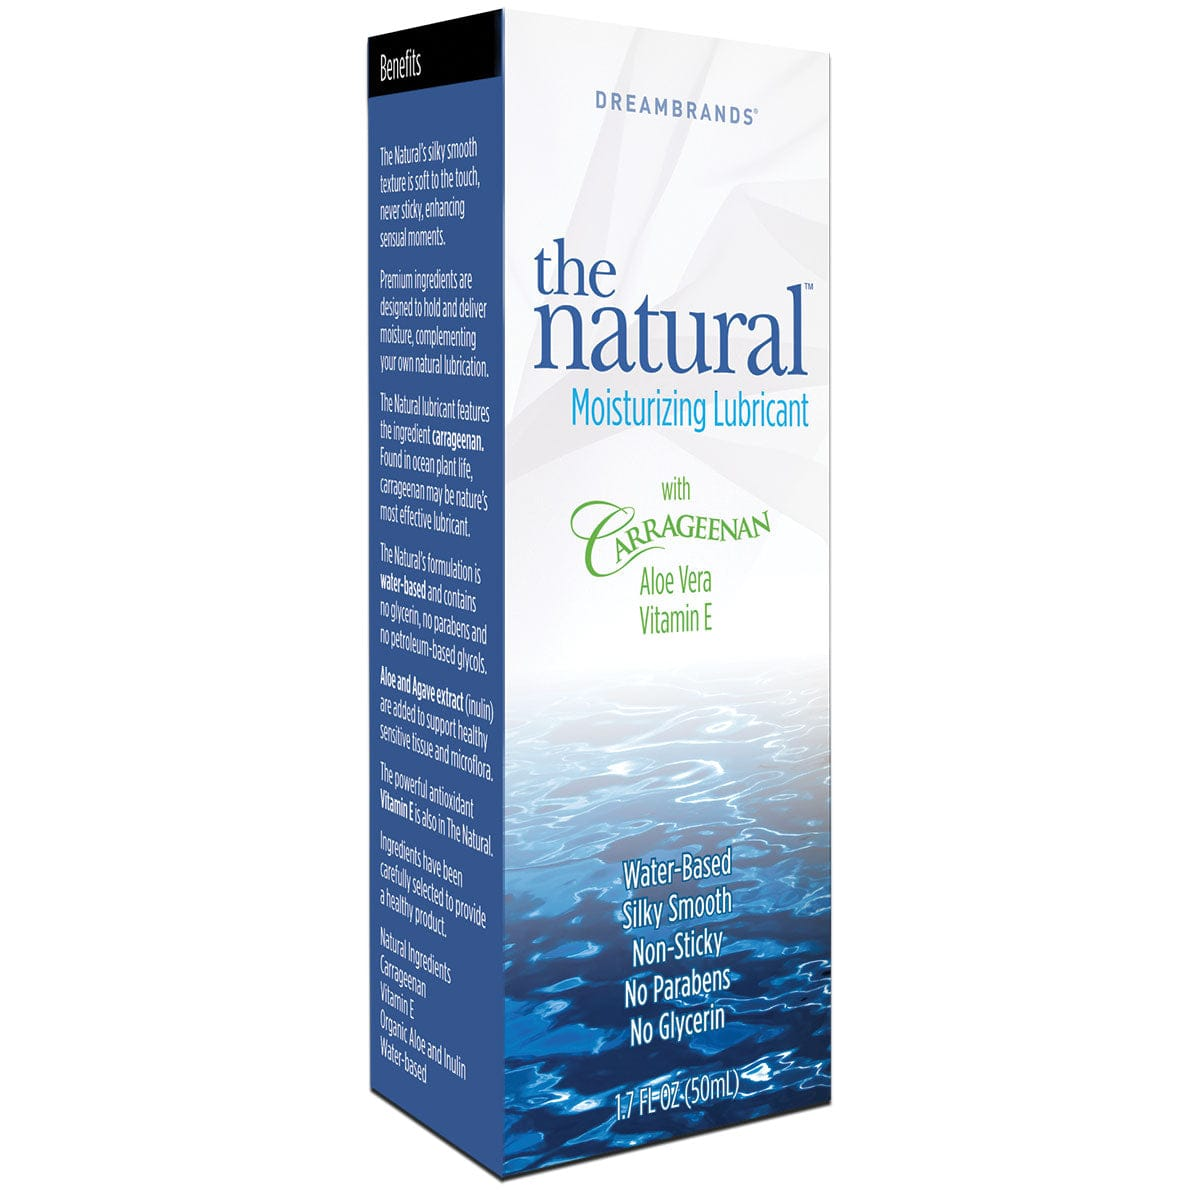 Natural Moisturizing Lubricant by Dreambrands - rolik